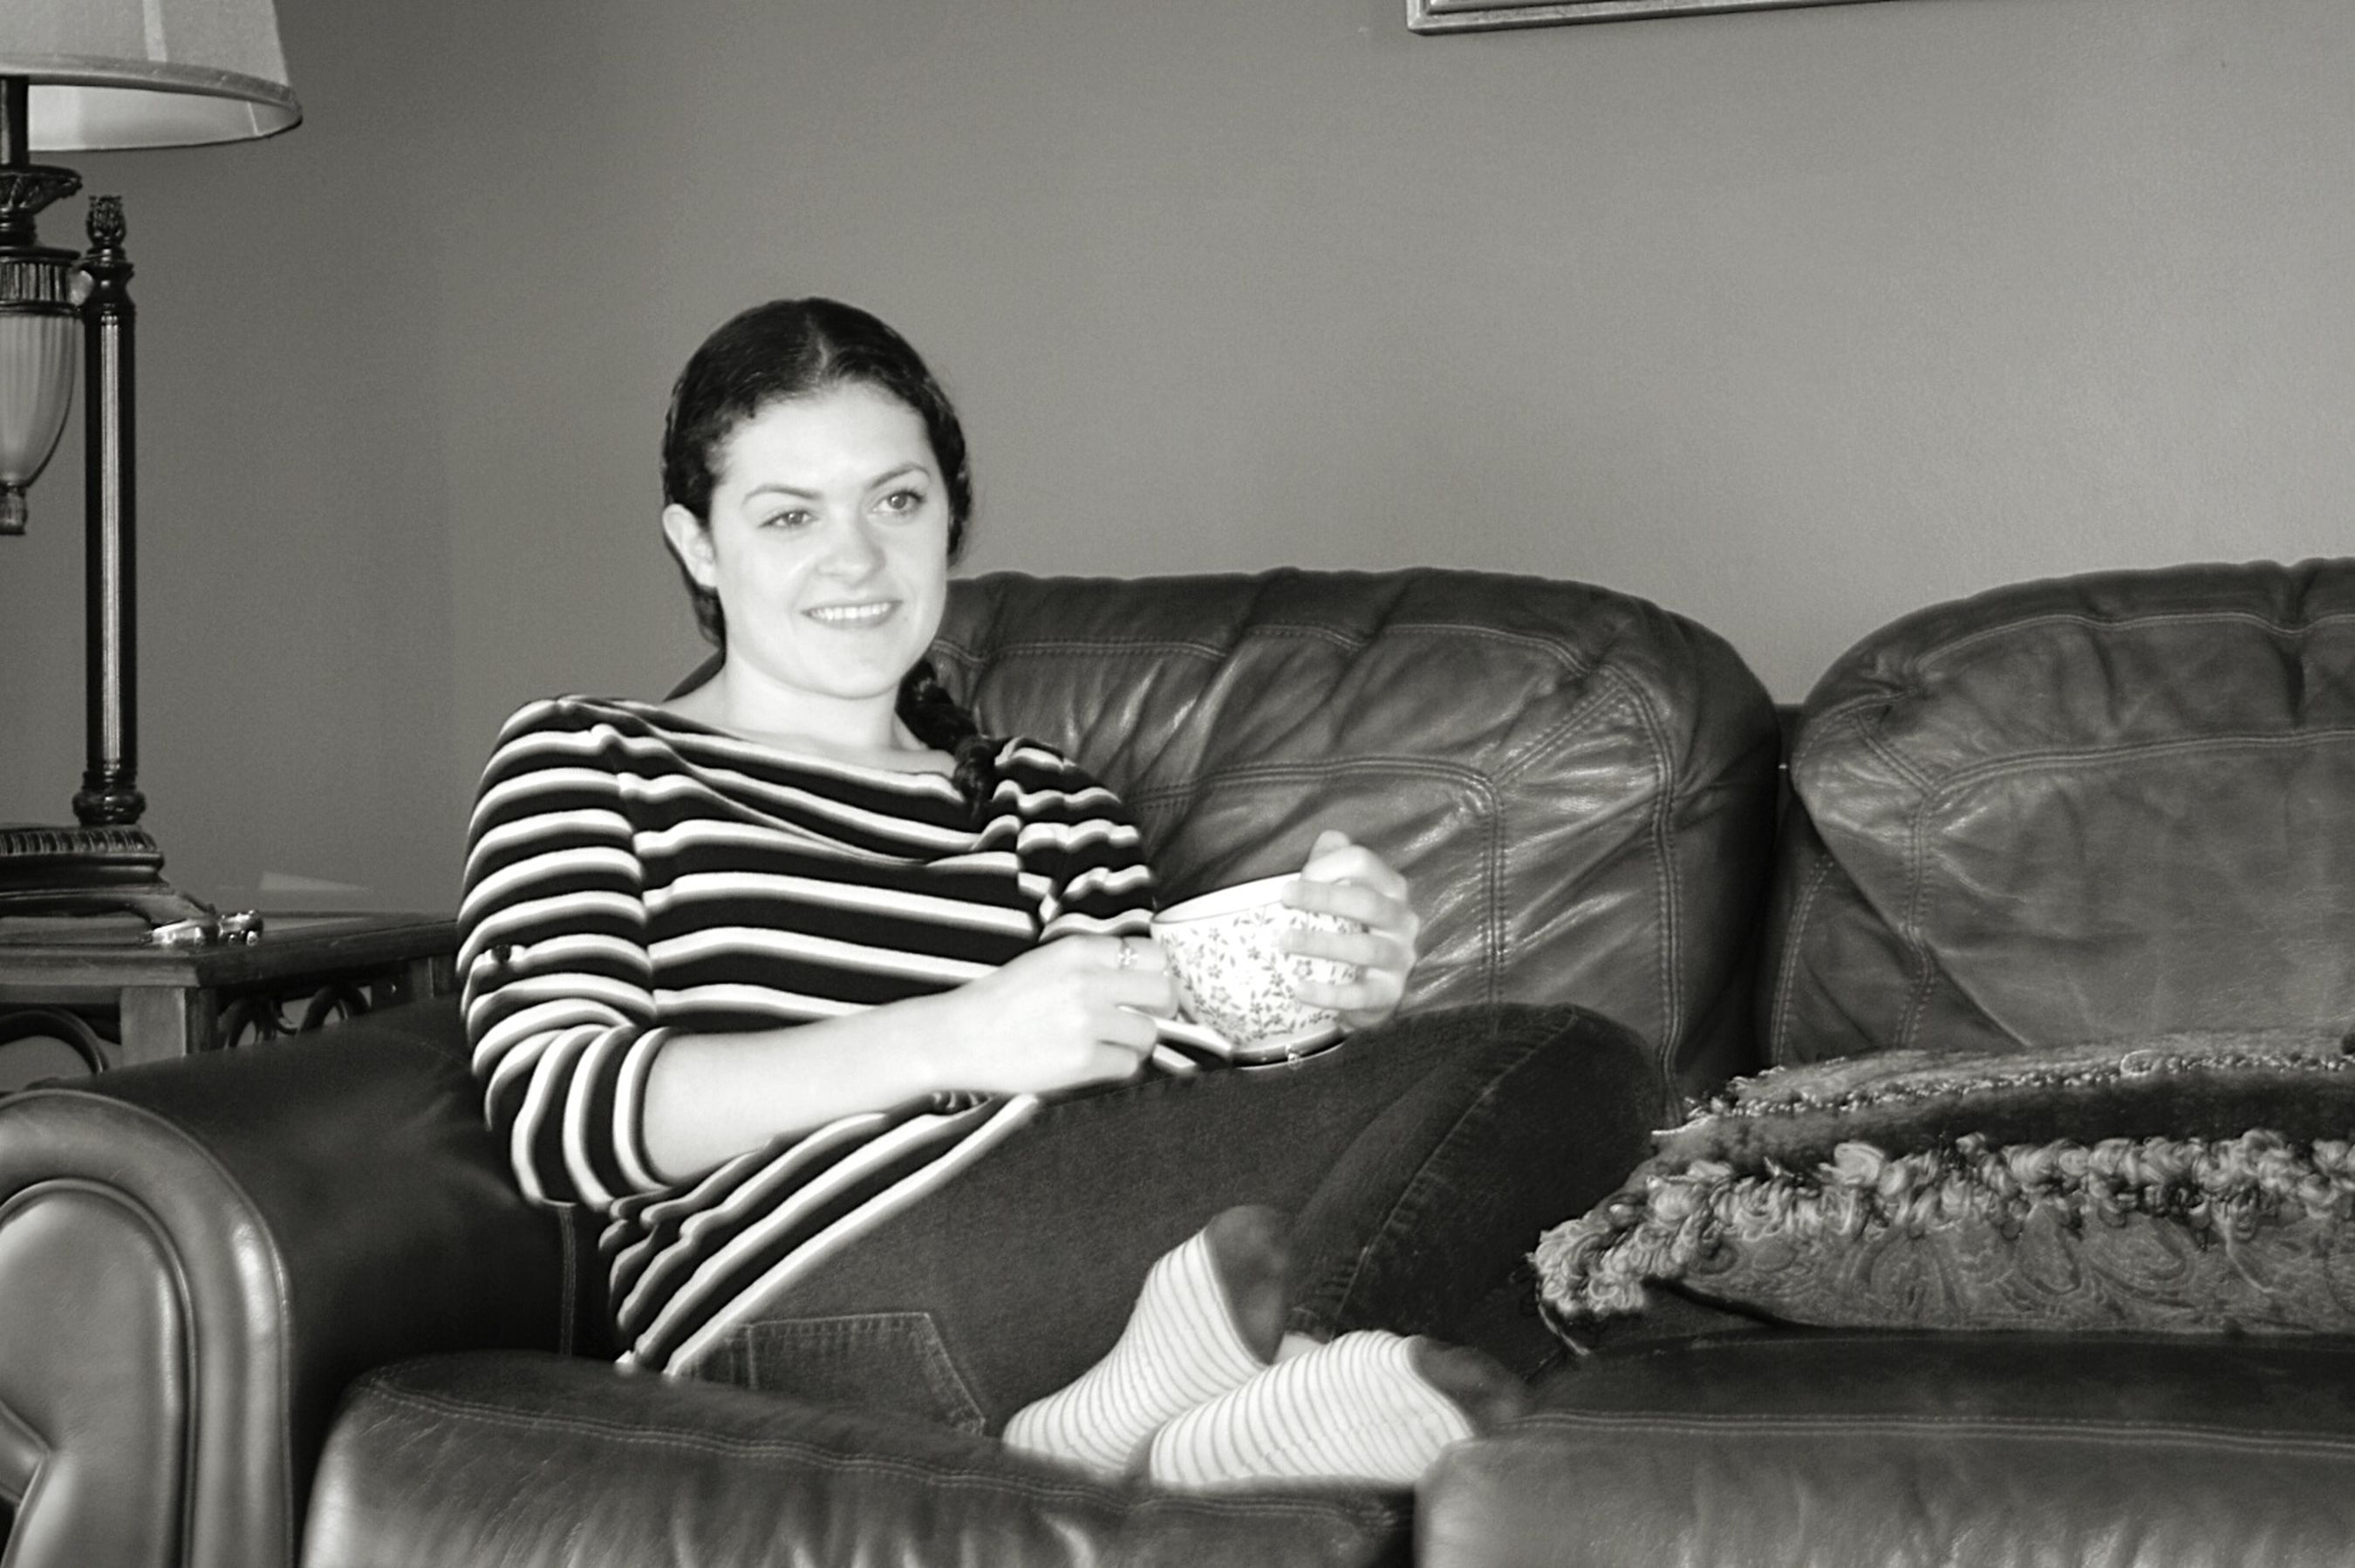 One Woman Only Sofa Adult Casual Clothing Looking At Camera One Person Living Room Portrait Leisure Activity Black & White Photography Black And White Portrait Black & White Tea Tea Time EyeEm Selects Close-up Smiling Woman Happy Woman Sitting Mature Adult Hands Hands Holding A Cup Relaxed Moments Relaxed Smile Woman Portraiture Black And White Friday